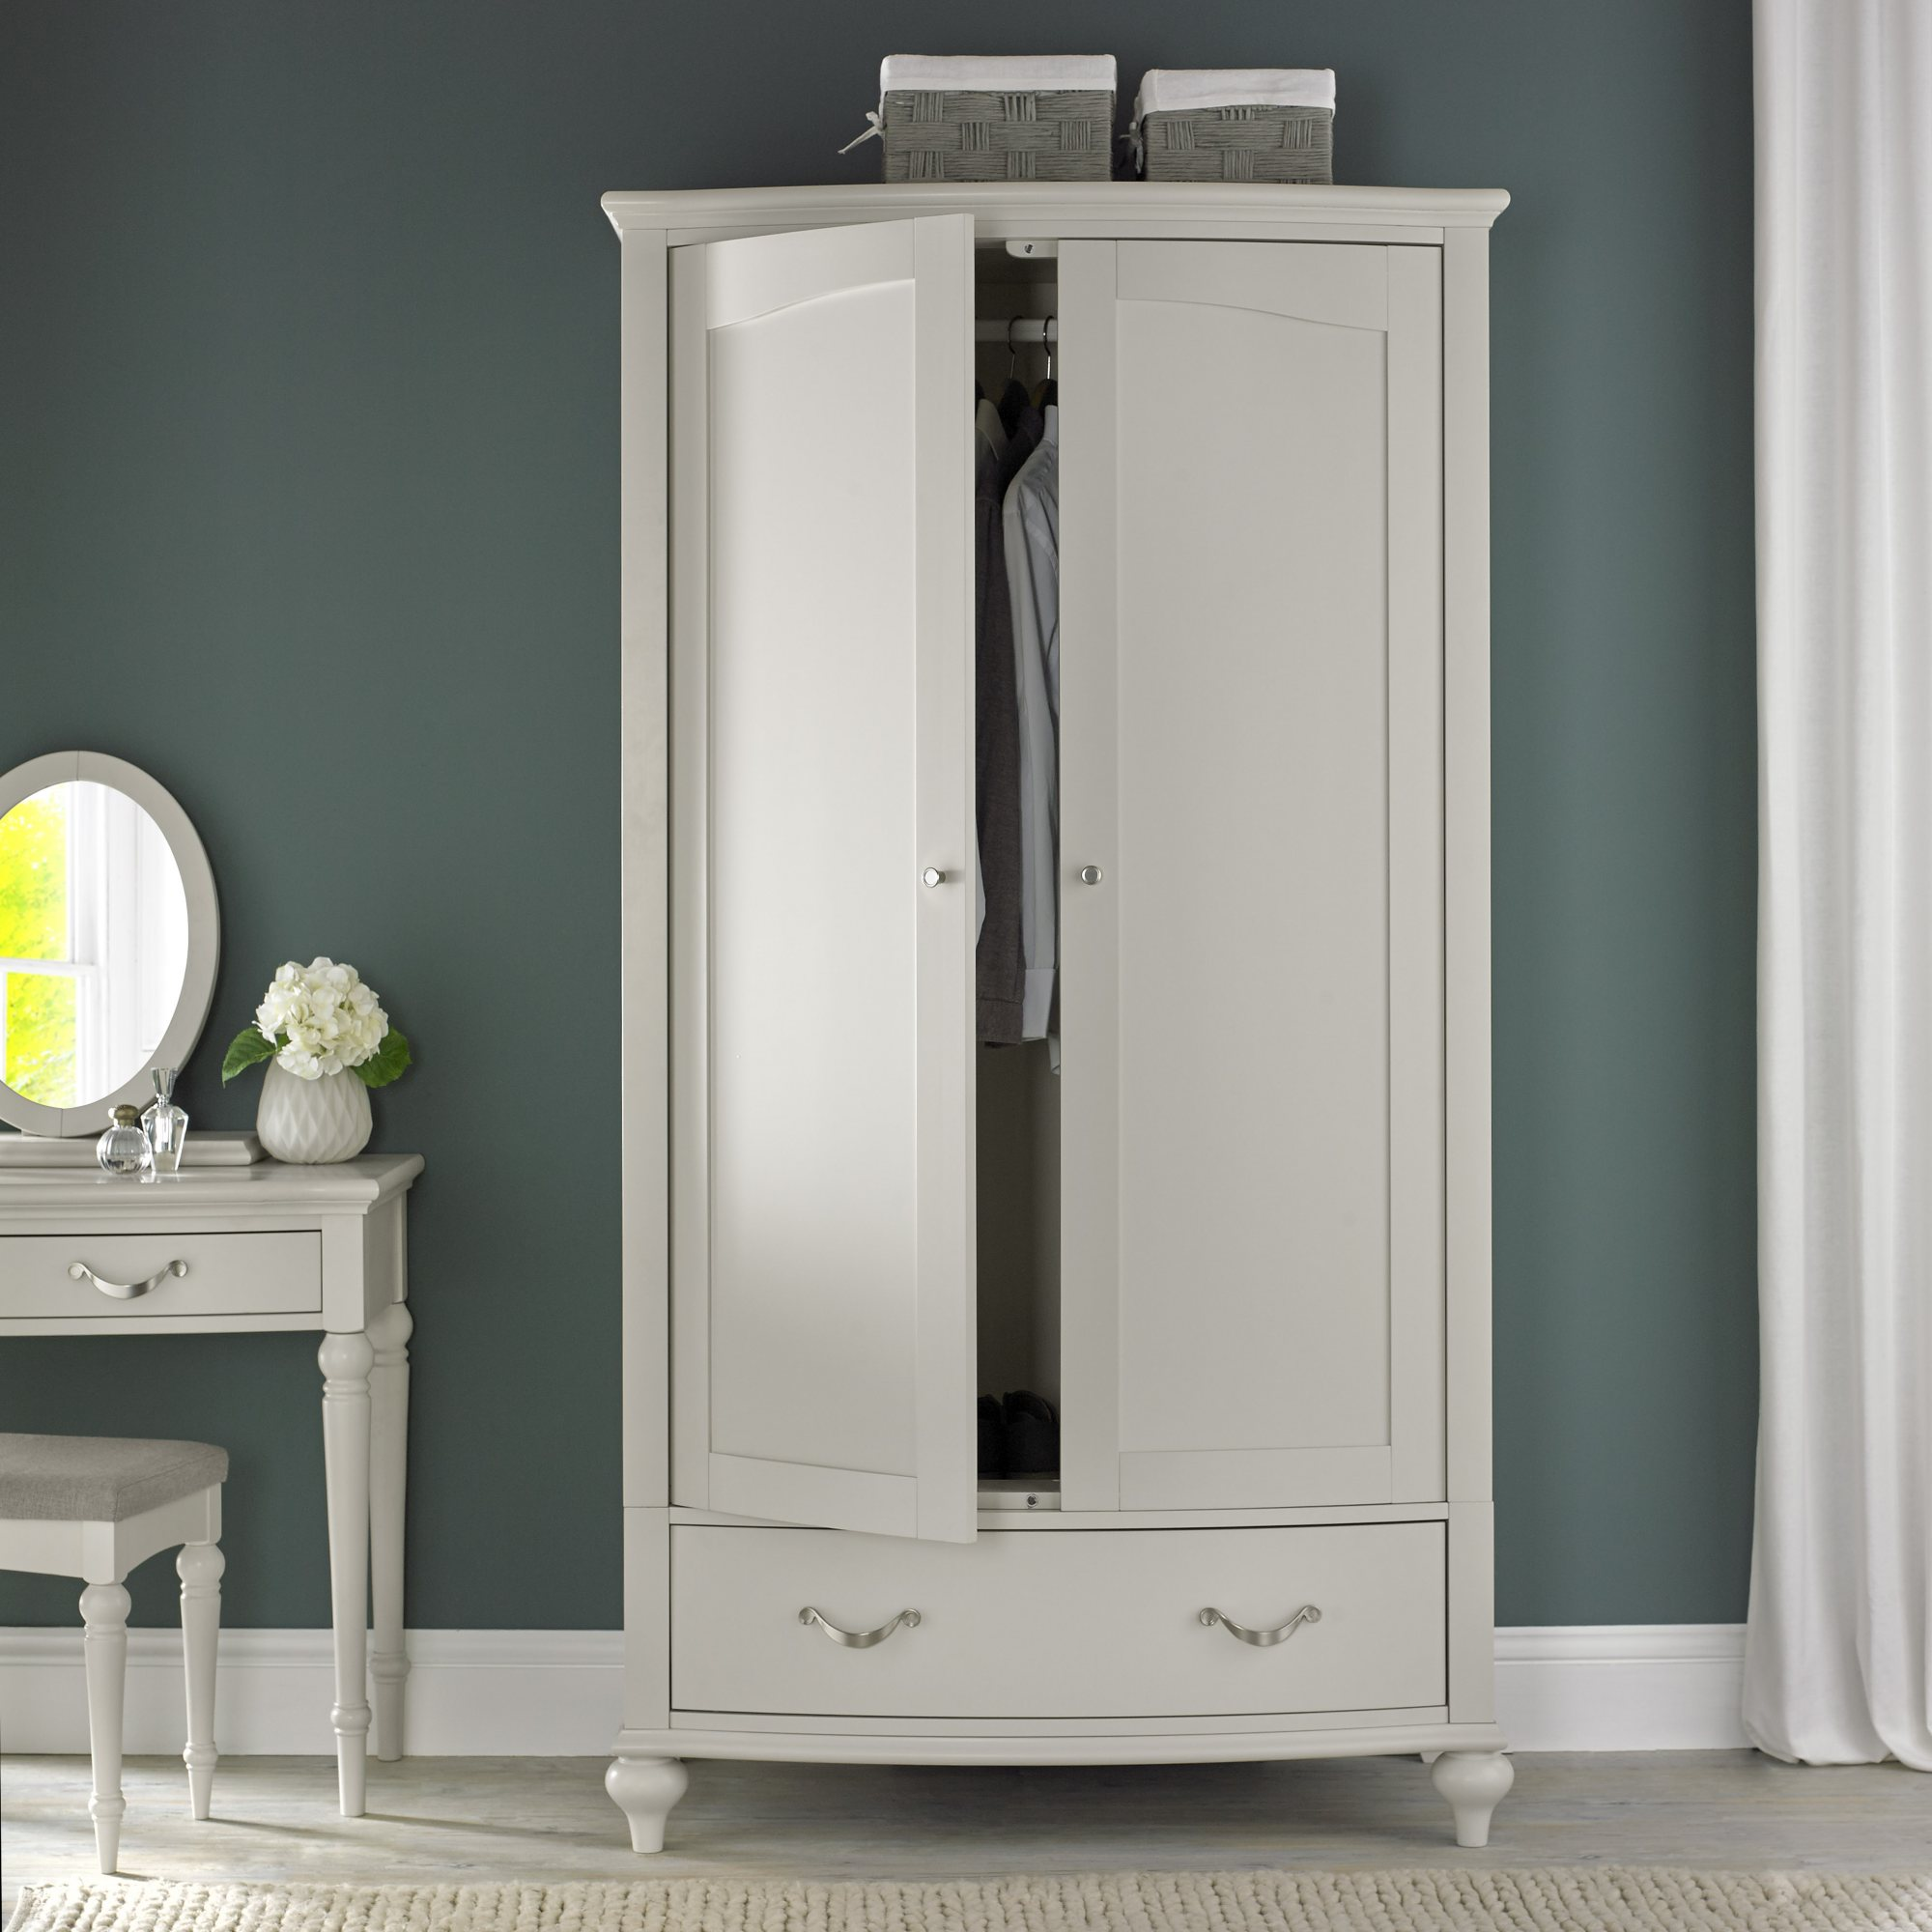 MONICA GREY DOUBLE WARDROBE - L110cm x D64cm x H200cm